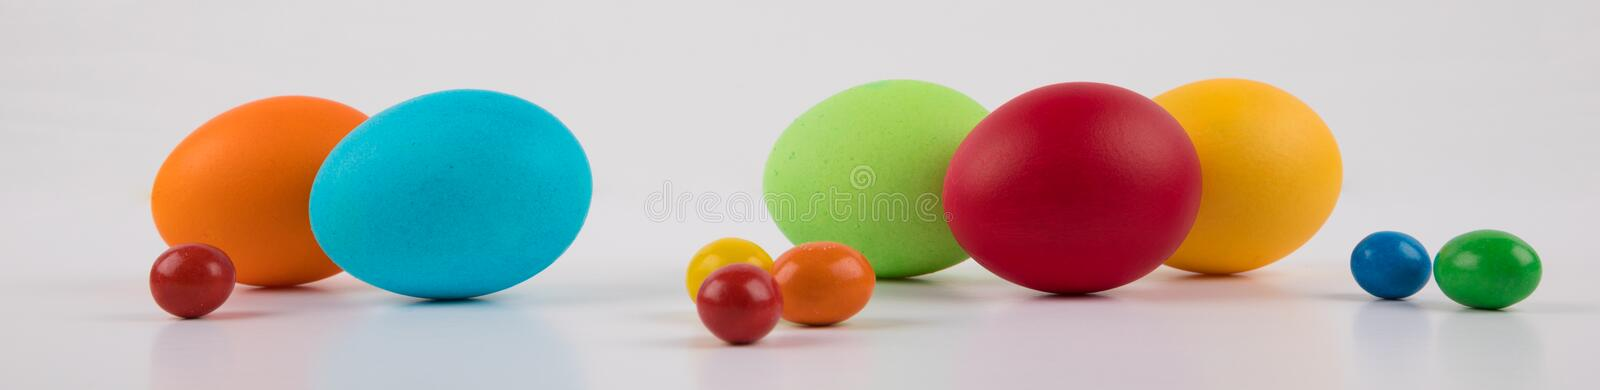 Colorful Easter Eggs Banner on White background, Big and Small Egg stock illustration